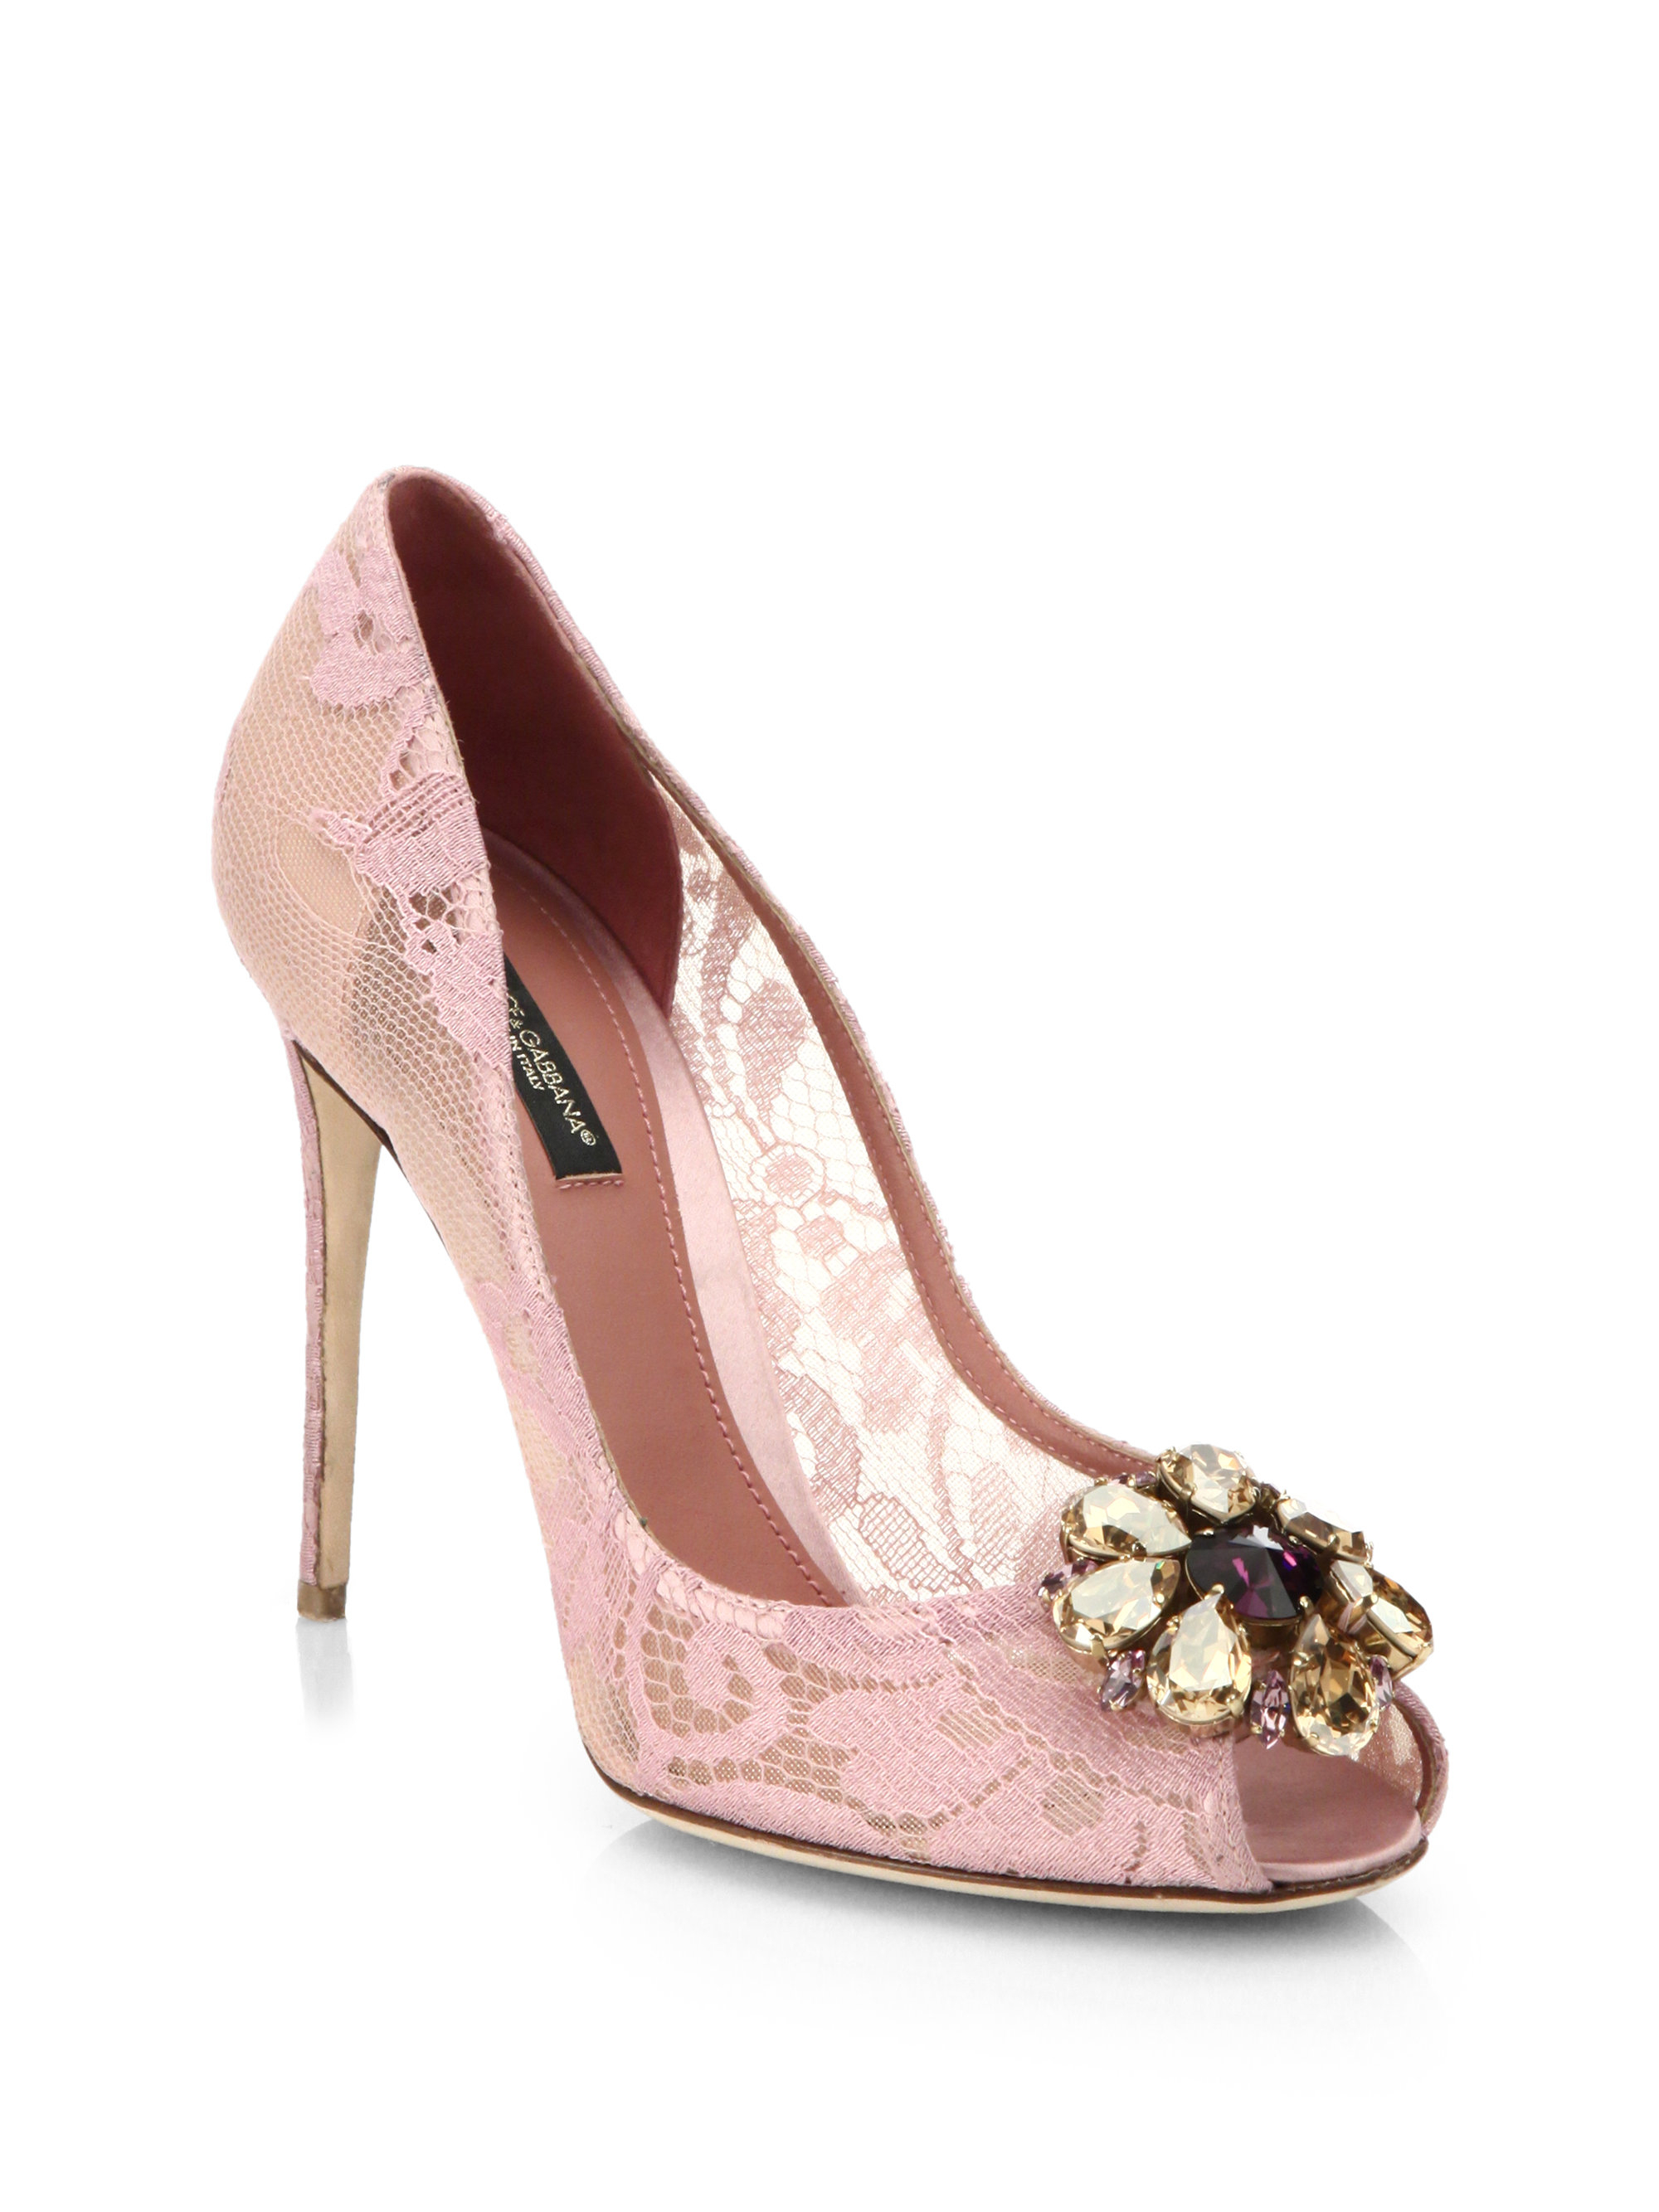 4c893f394db2 Lyst - Dolce   Gabbana Embellished Lace Peep-toe Pumps in Pink